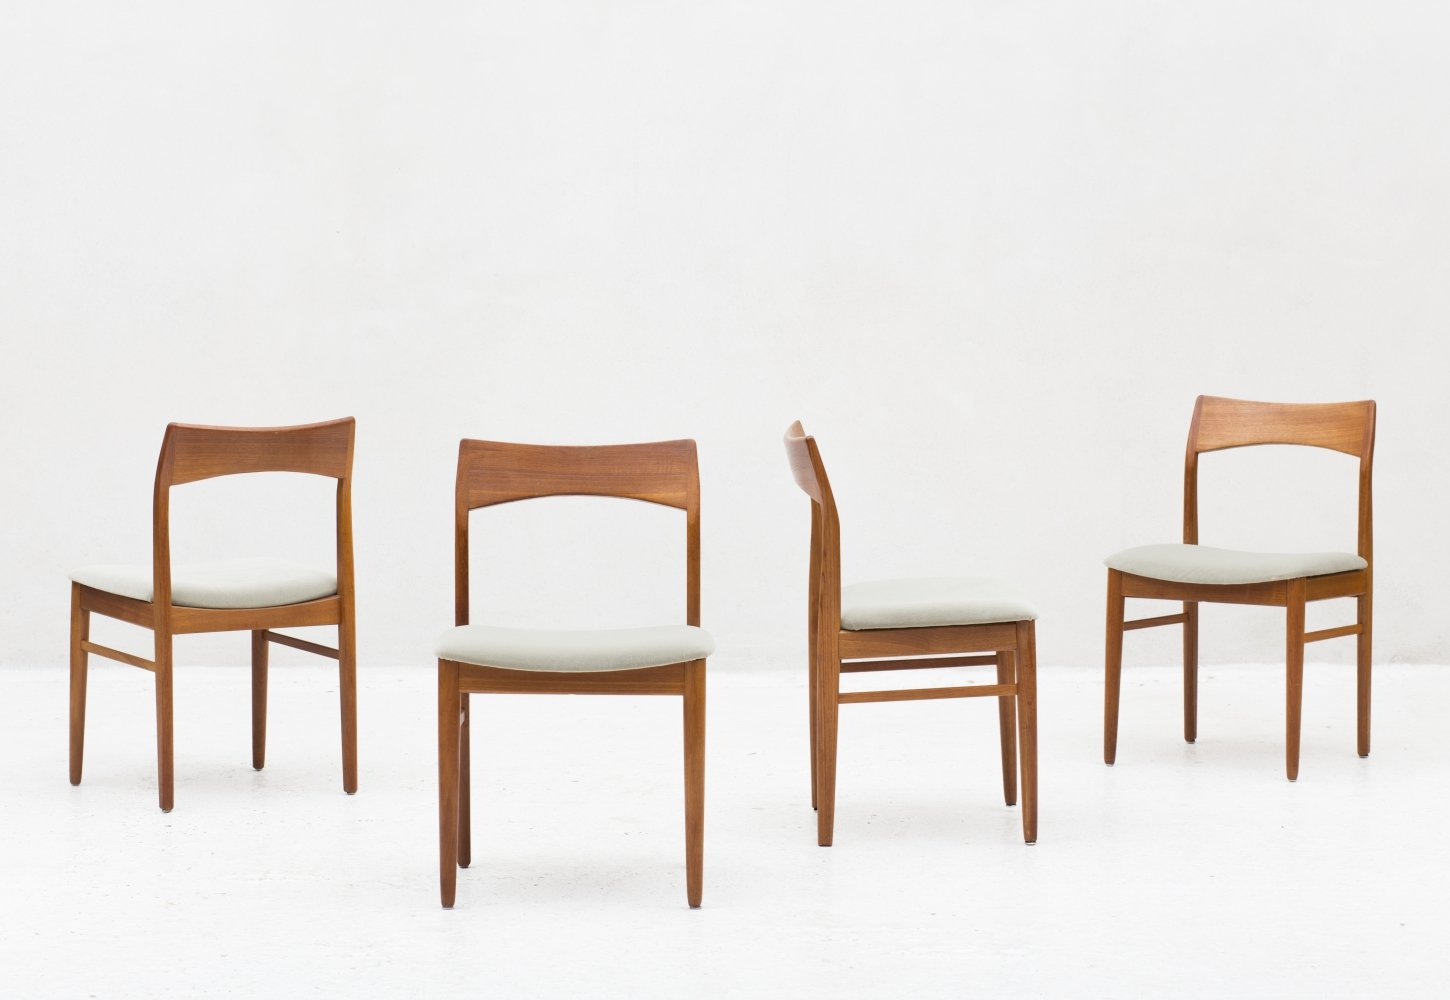 Set of 4 dining chairs by Henning Kjaernulf, Denmark 1960